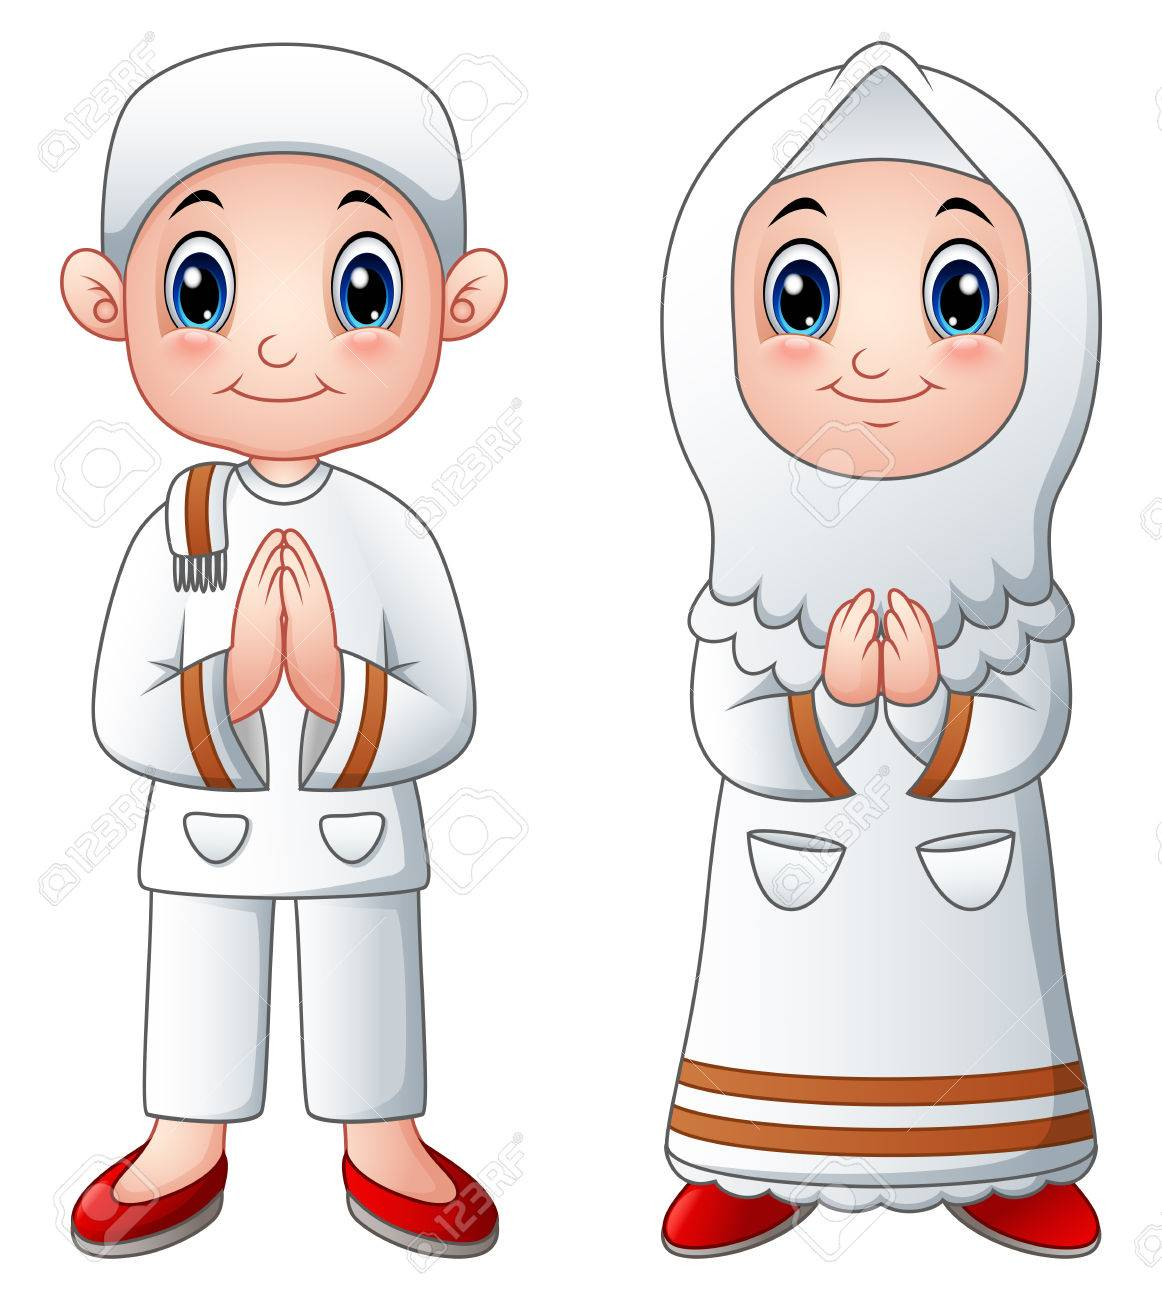 Muslim kid cartoon greeting royalty free cliparts vectors and muslim kid cartoon greeting stock vector 79164209 m4hsunfo